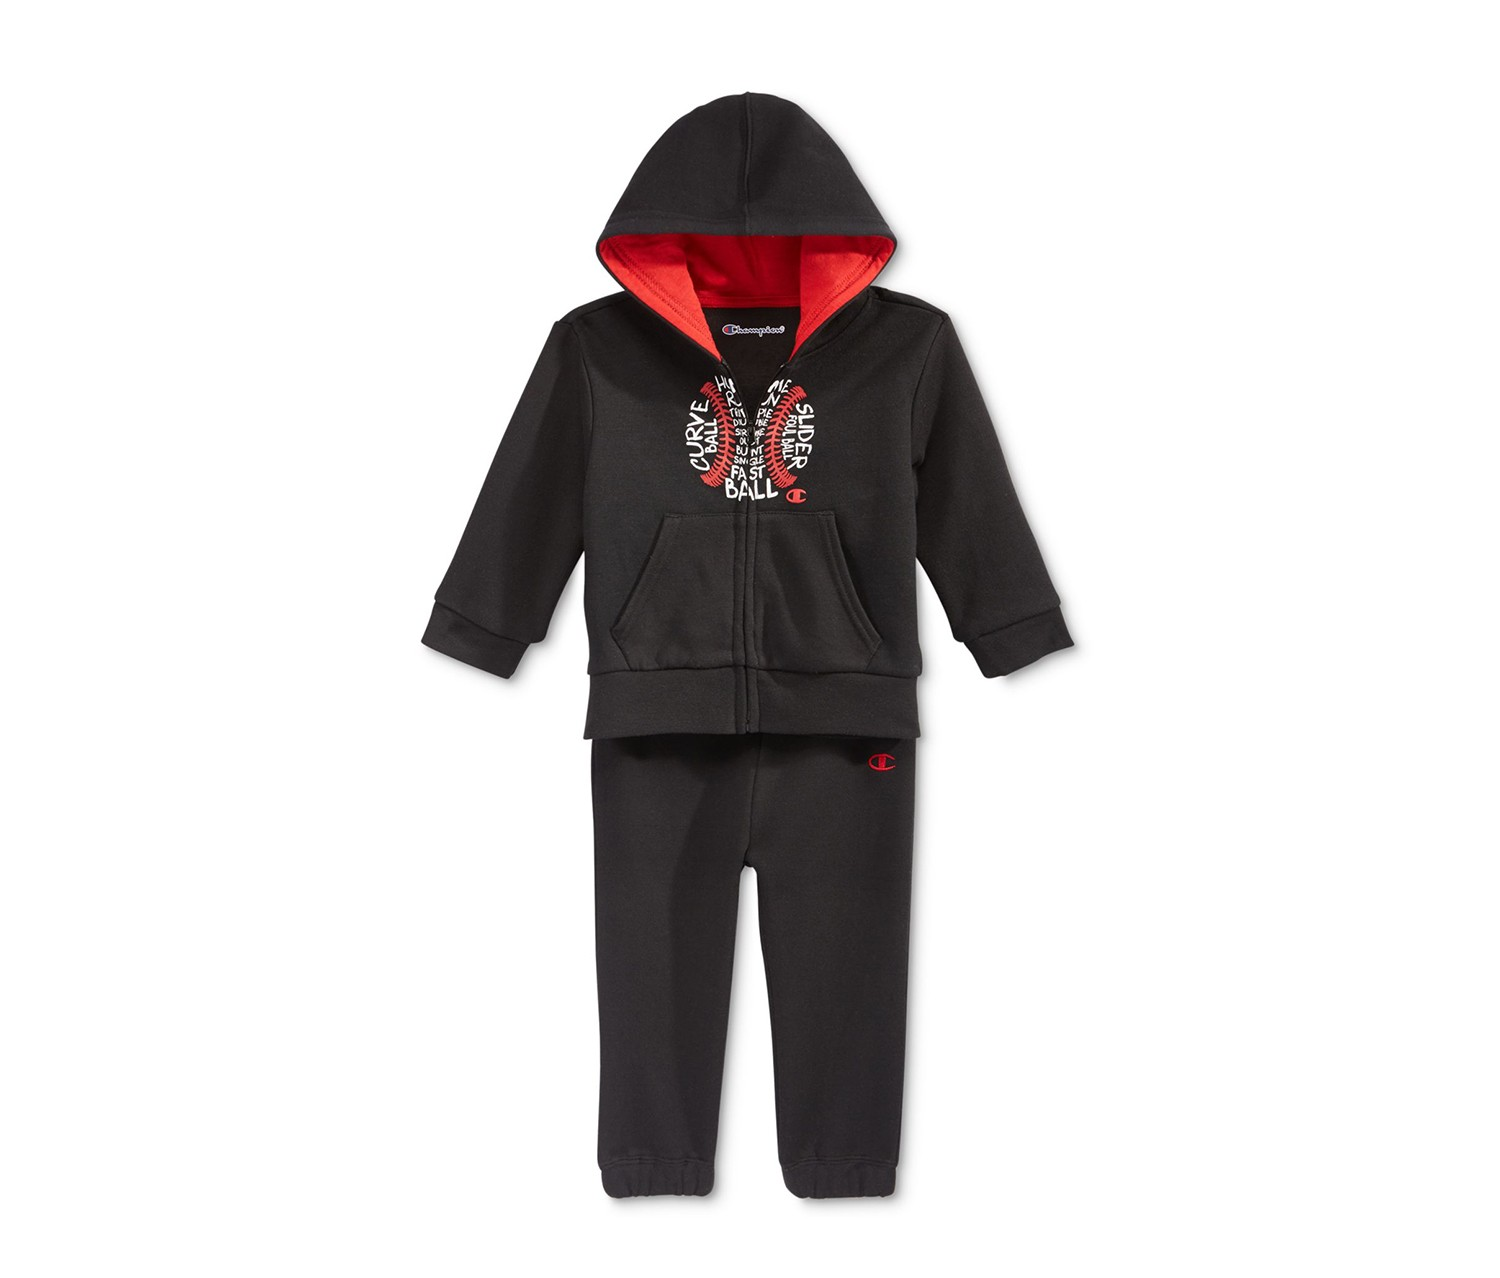 cb4b4bcc1671 Shop CHAMPION Champion Baby Boys  2-Pc. Baseball Zip-Up Hoodie ...